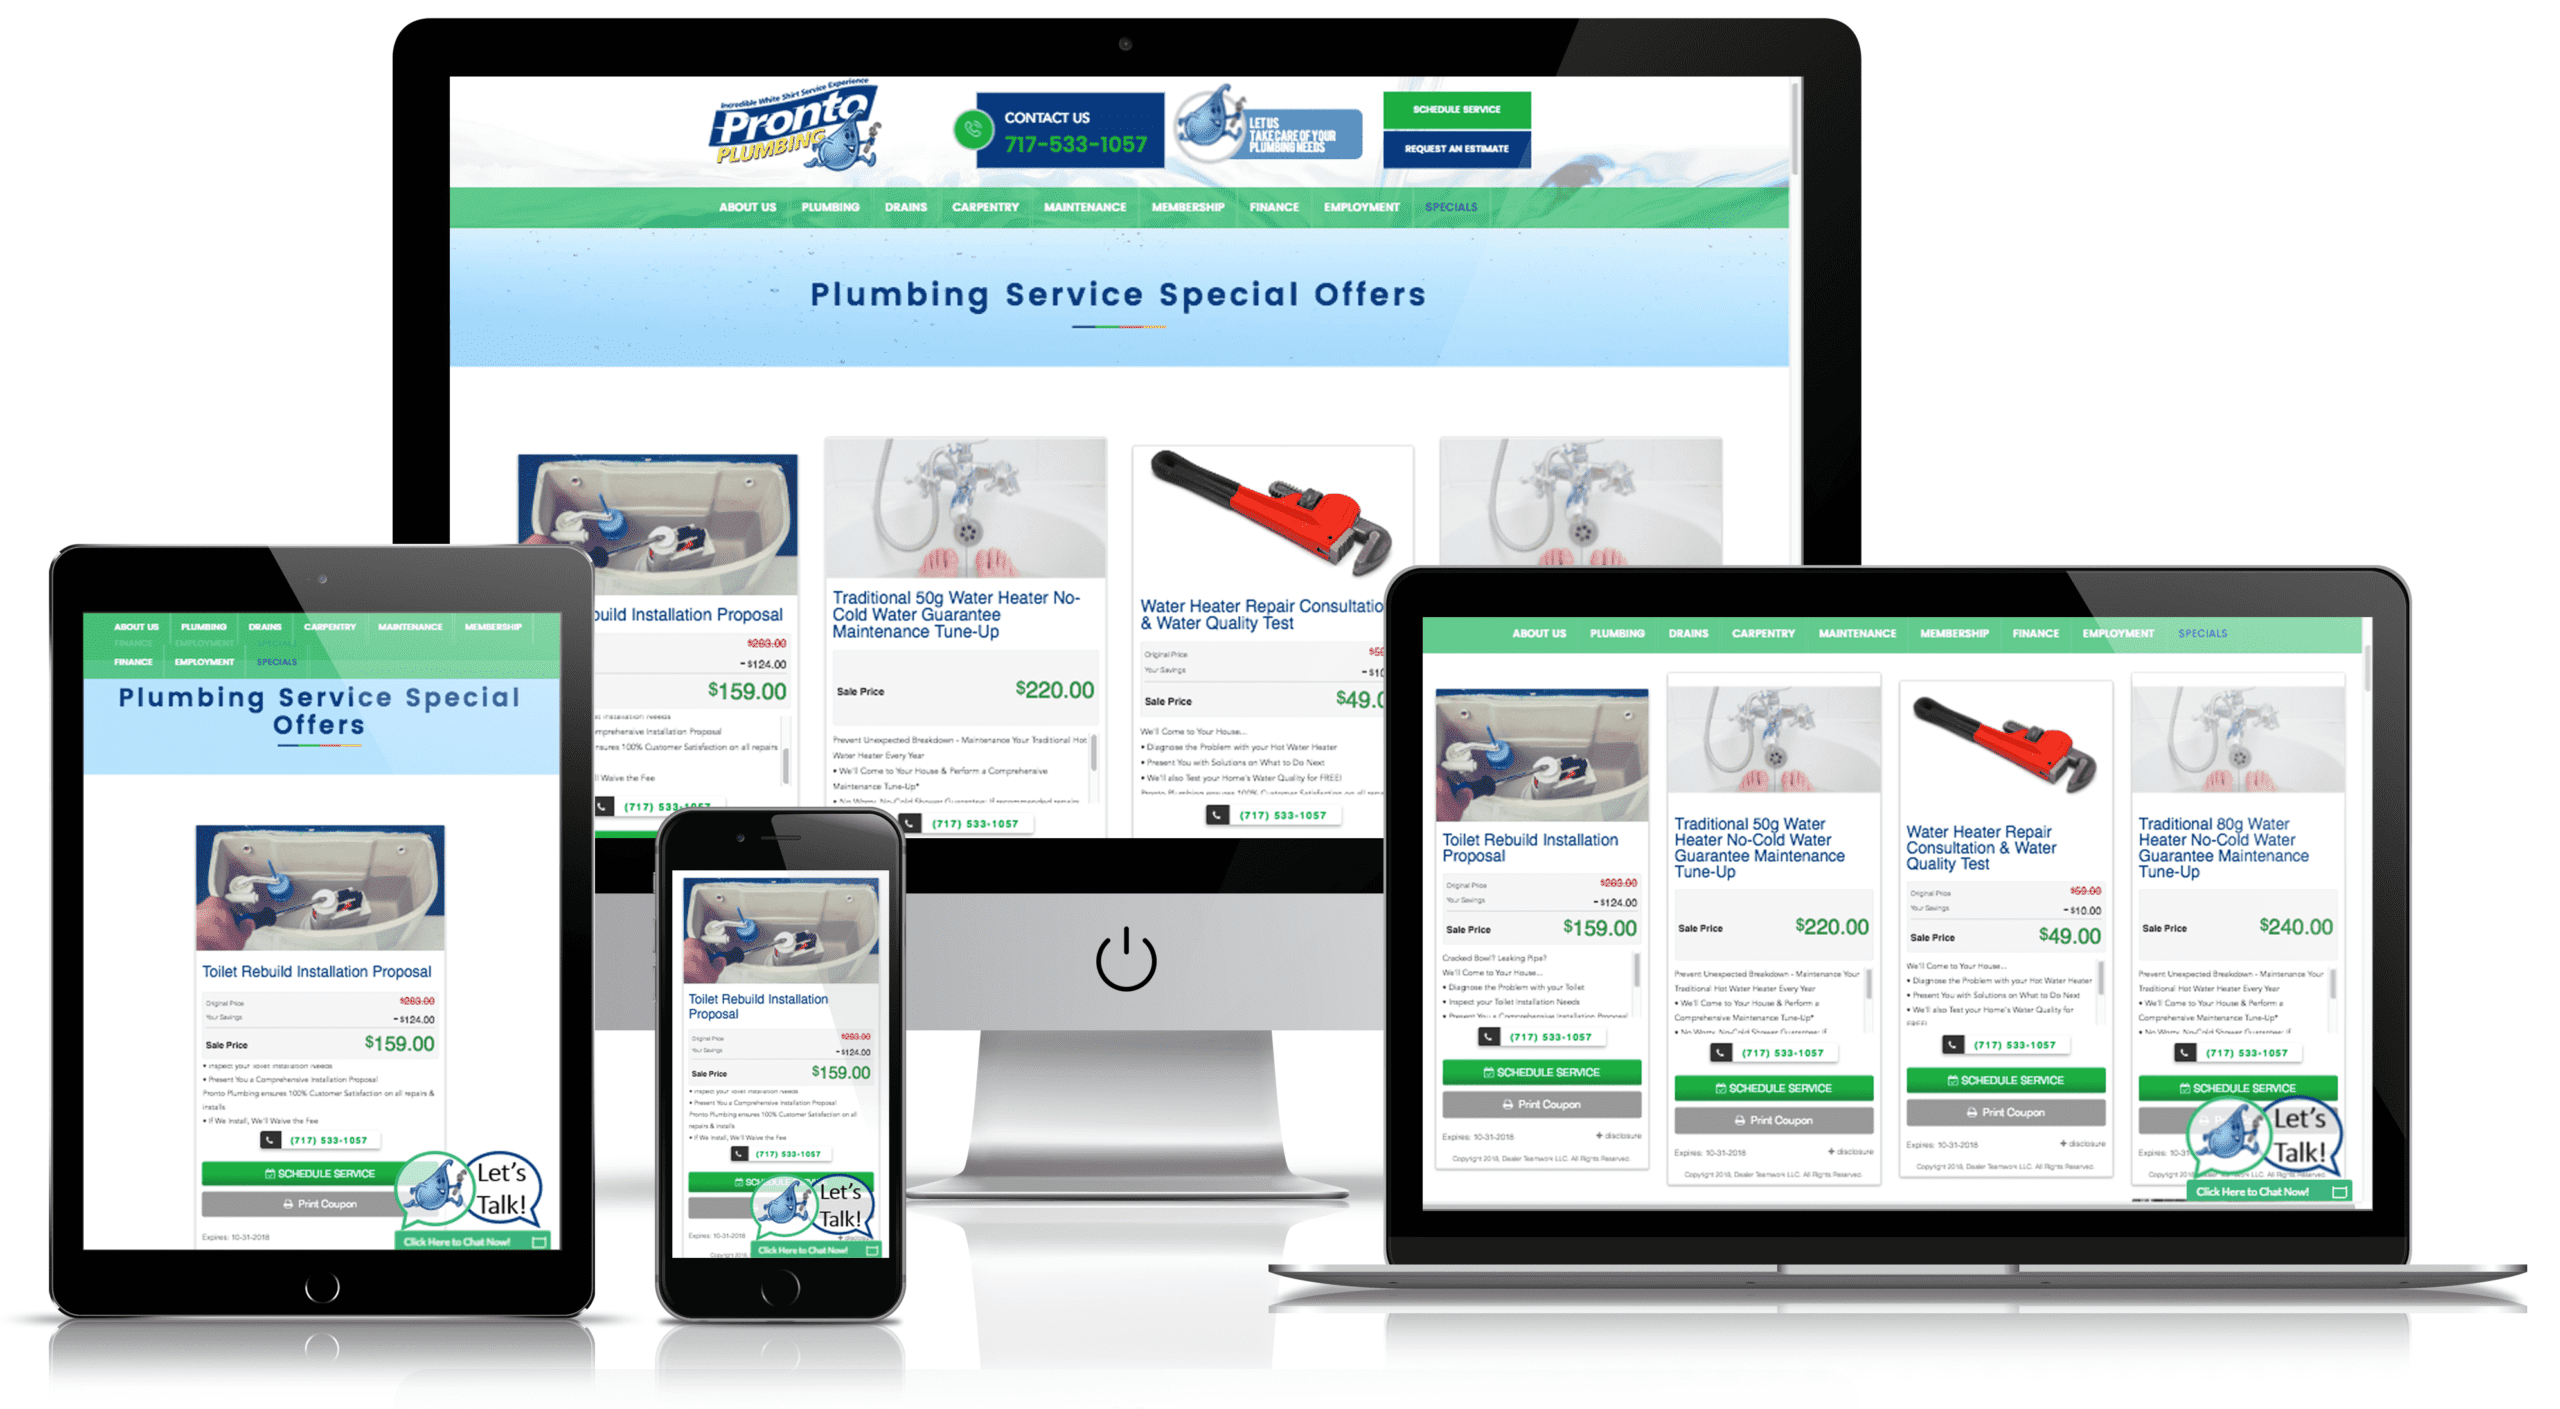 Home Local Services Websites and Digital Marketing Example on All Devices